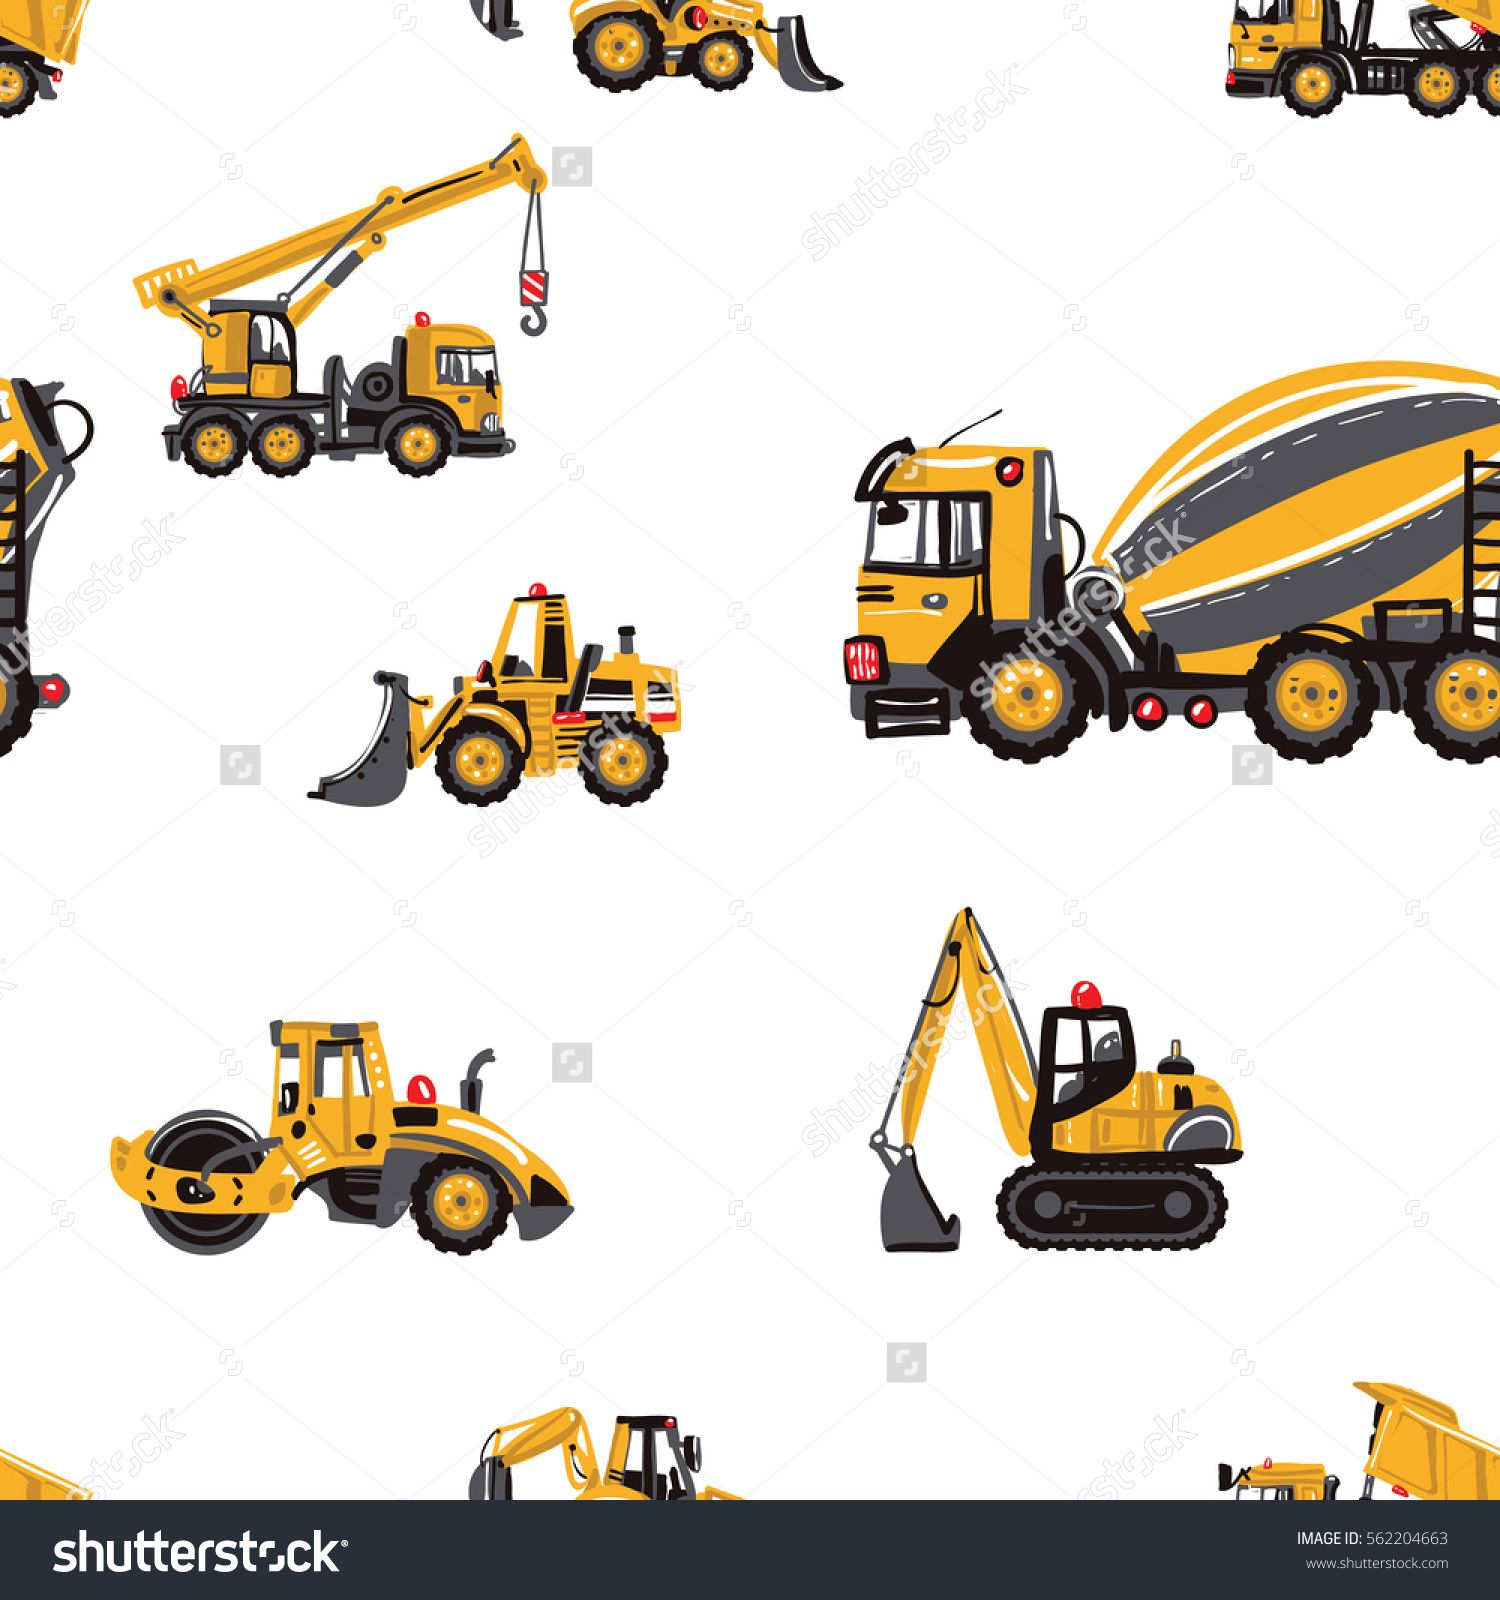 Backhoe clipart cute. Seamless pattern with road